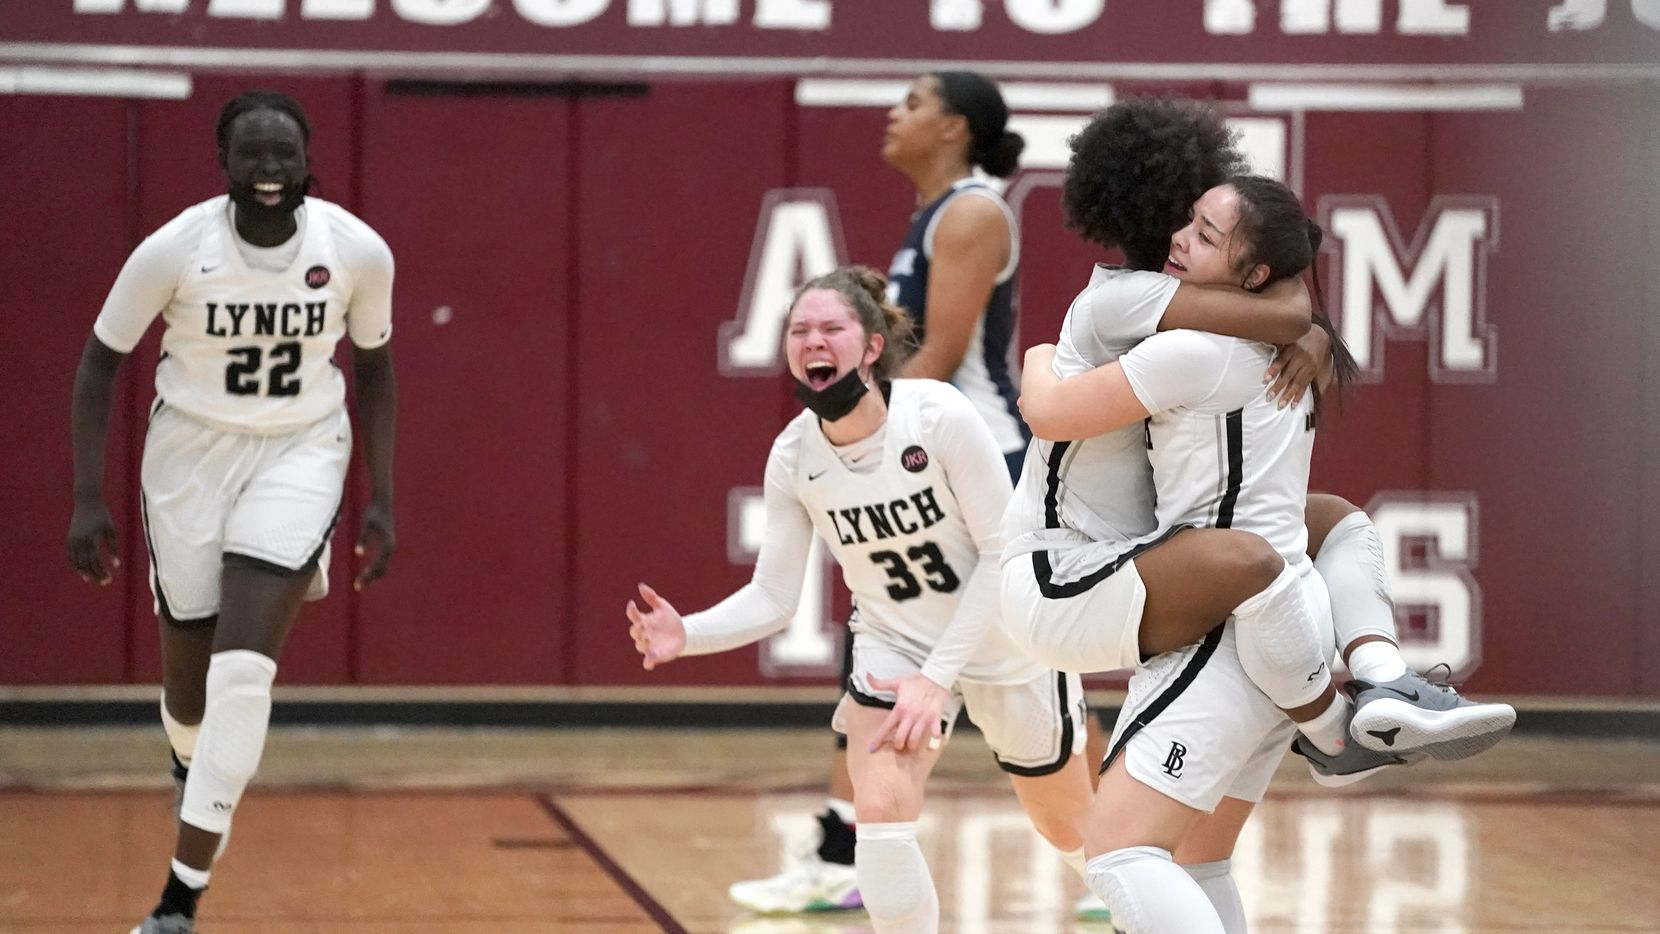 Dallas Bishop Lynch's Madison Cockrell (5) jumps into the arms of Talia Depetrillo (11) after defeating The Village School in the TAPPS 6A girls basketball championship game at A&M Consolidated High School in College Station, Texas on Friday, March 12, 2021.